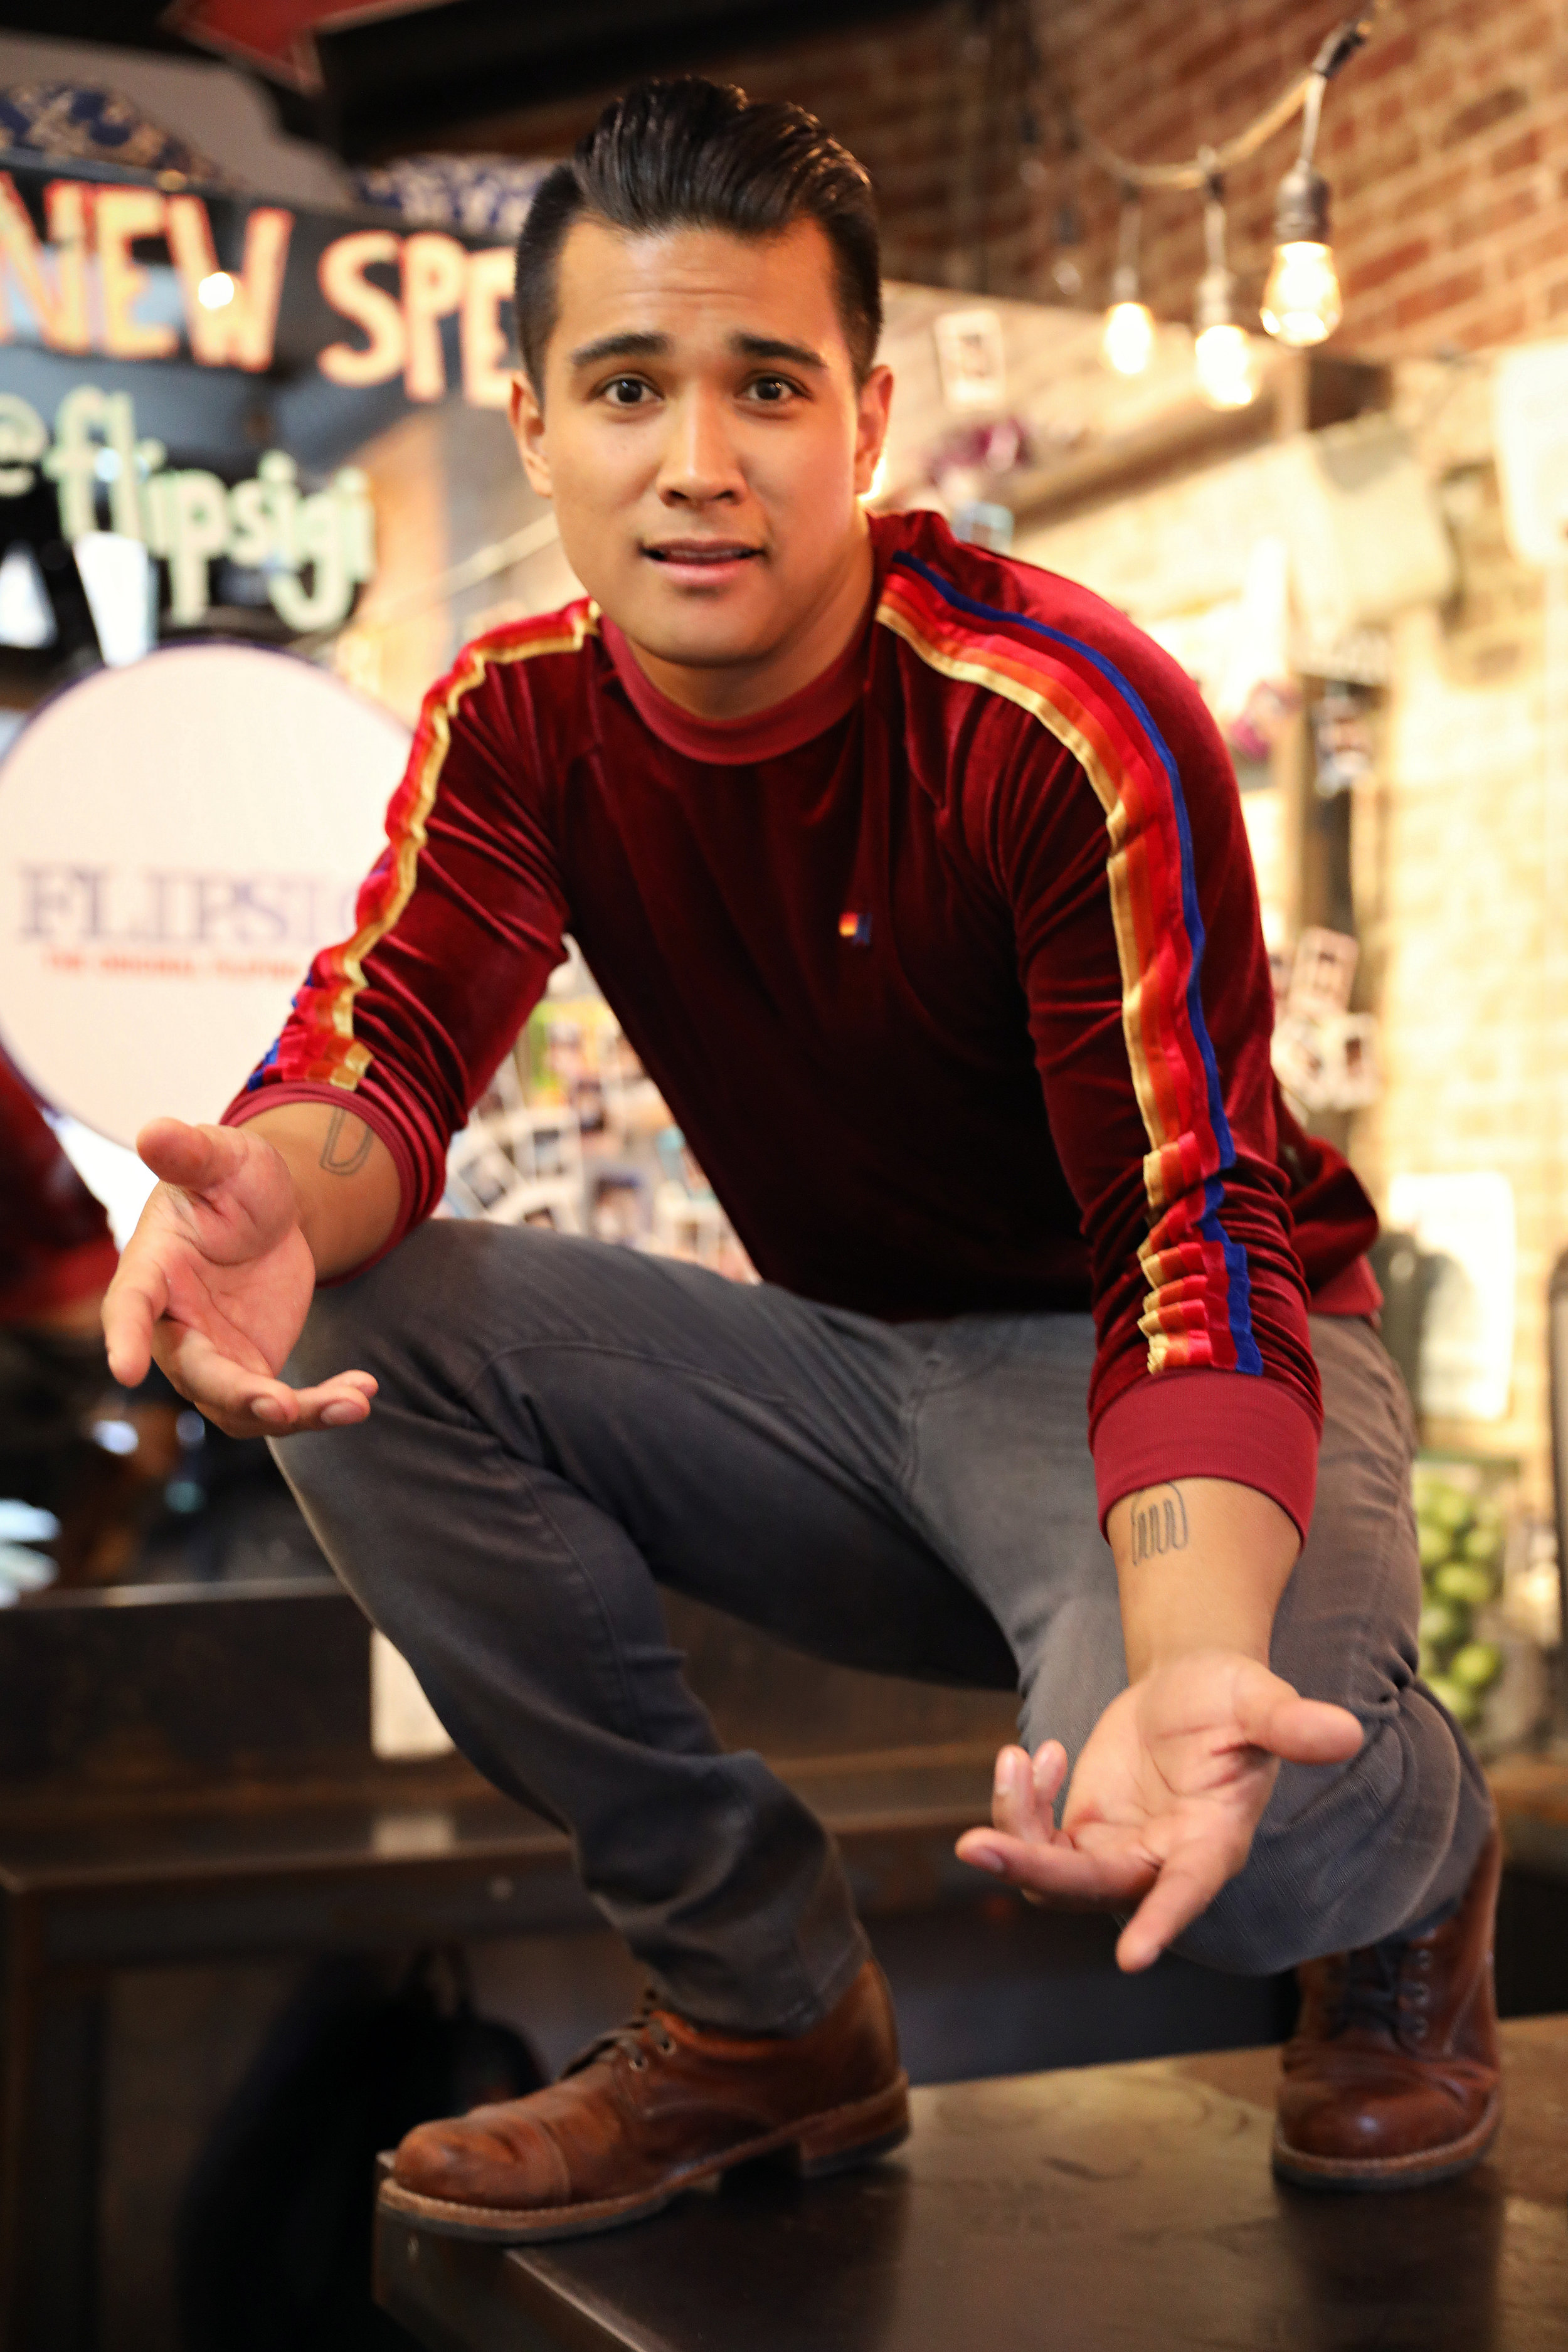 AM NOV GRAB YOUR FORK AND KNIFE WITH JORDAN ANDINO - 4.jpg